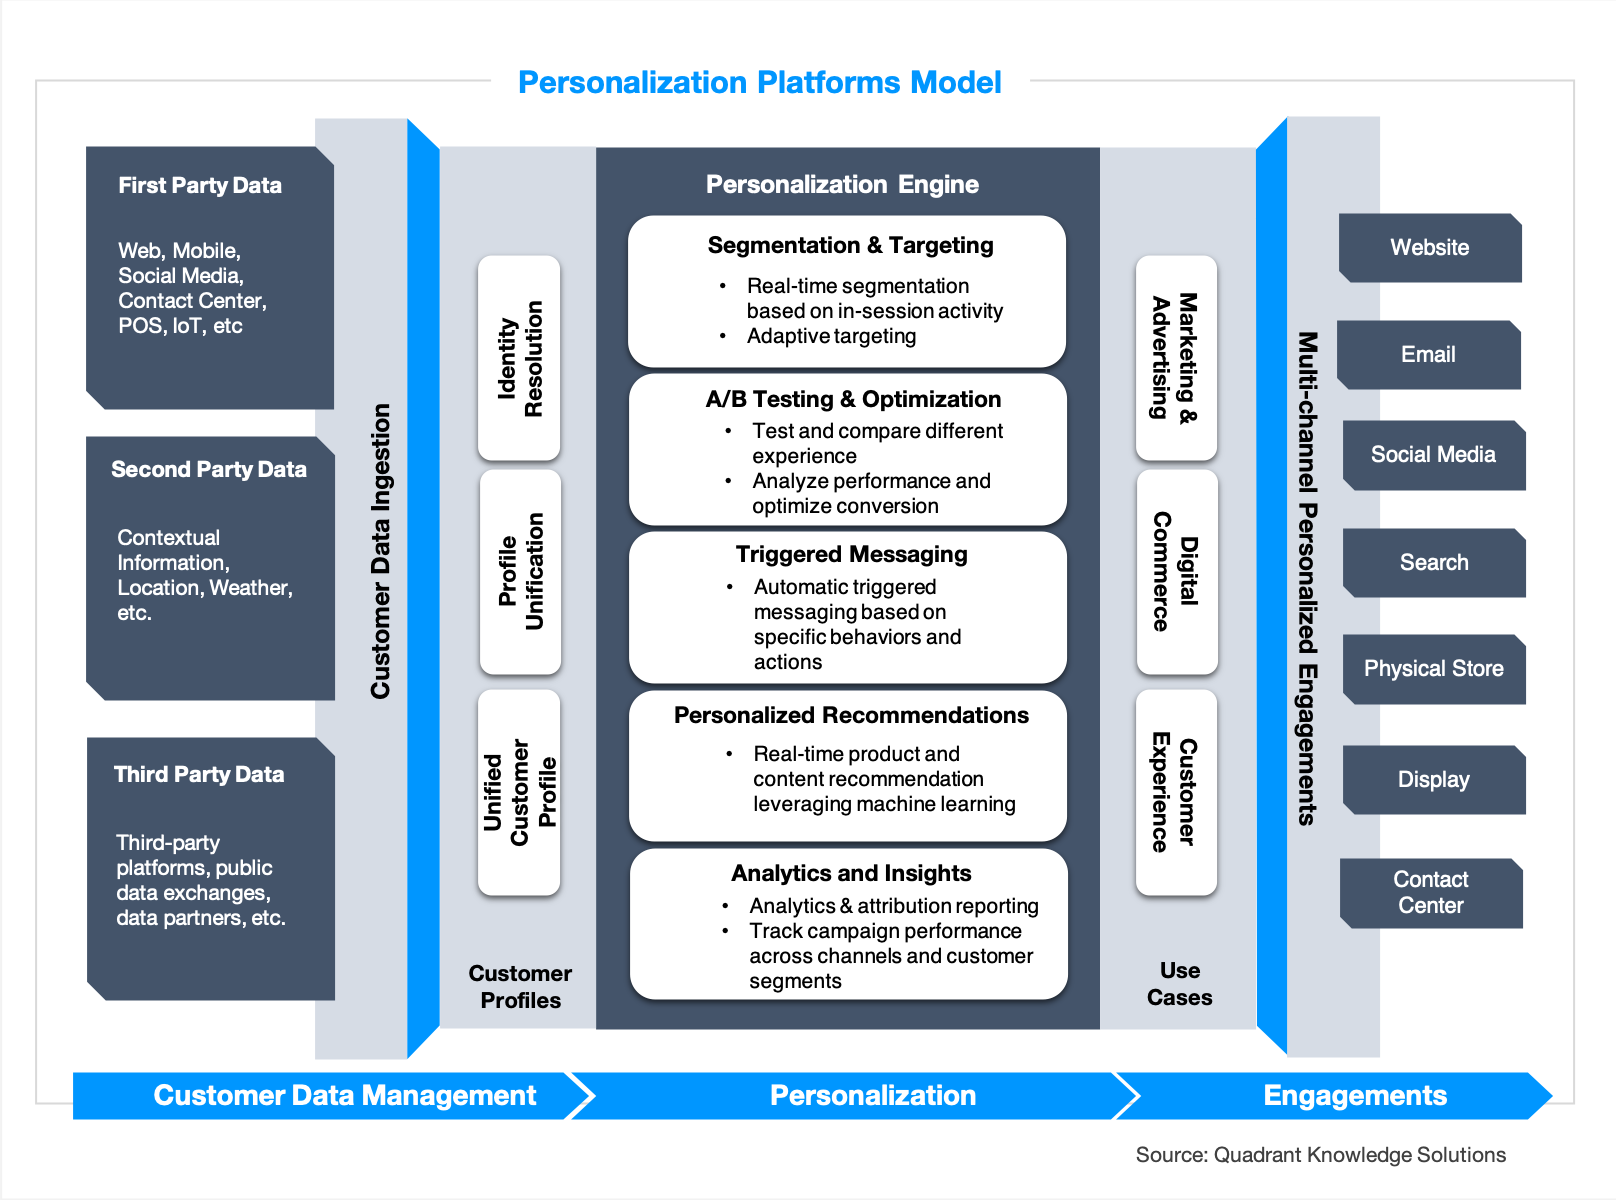 Personalization engine platforms by Quadrant Knowledge Solutions